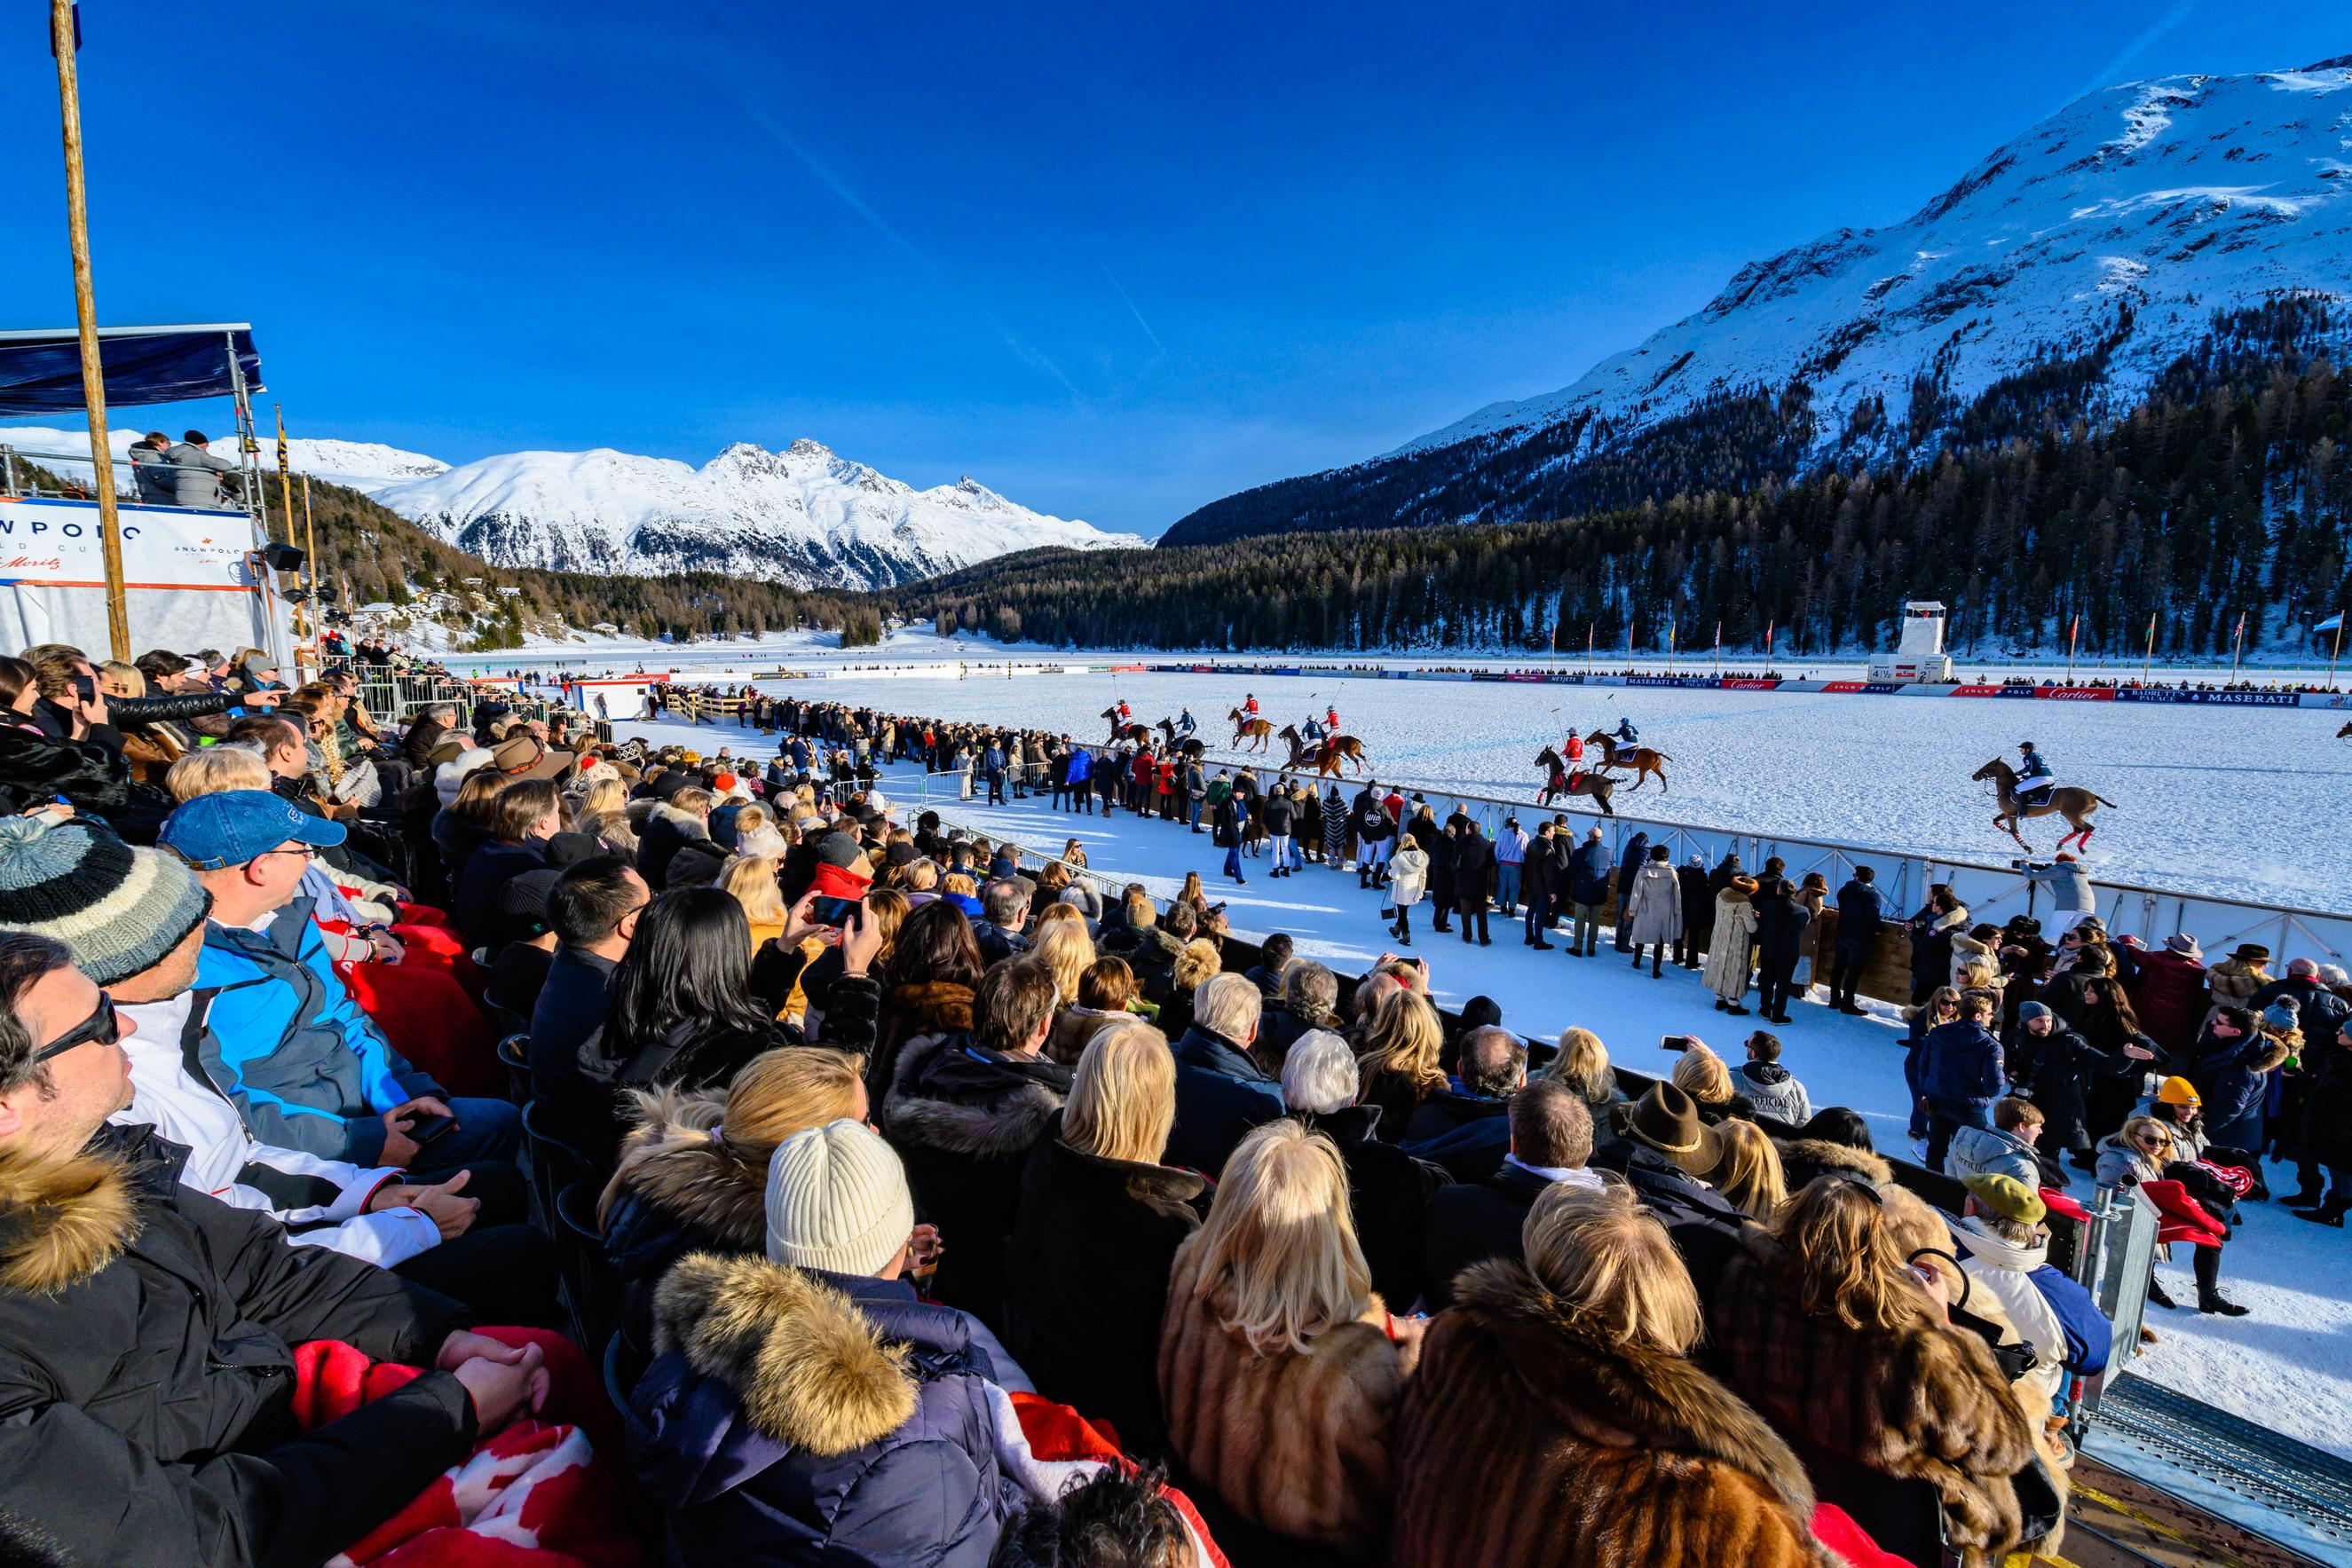 Snow Polo World Cup Crowd